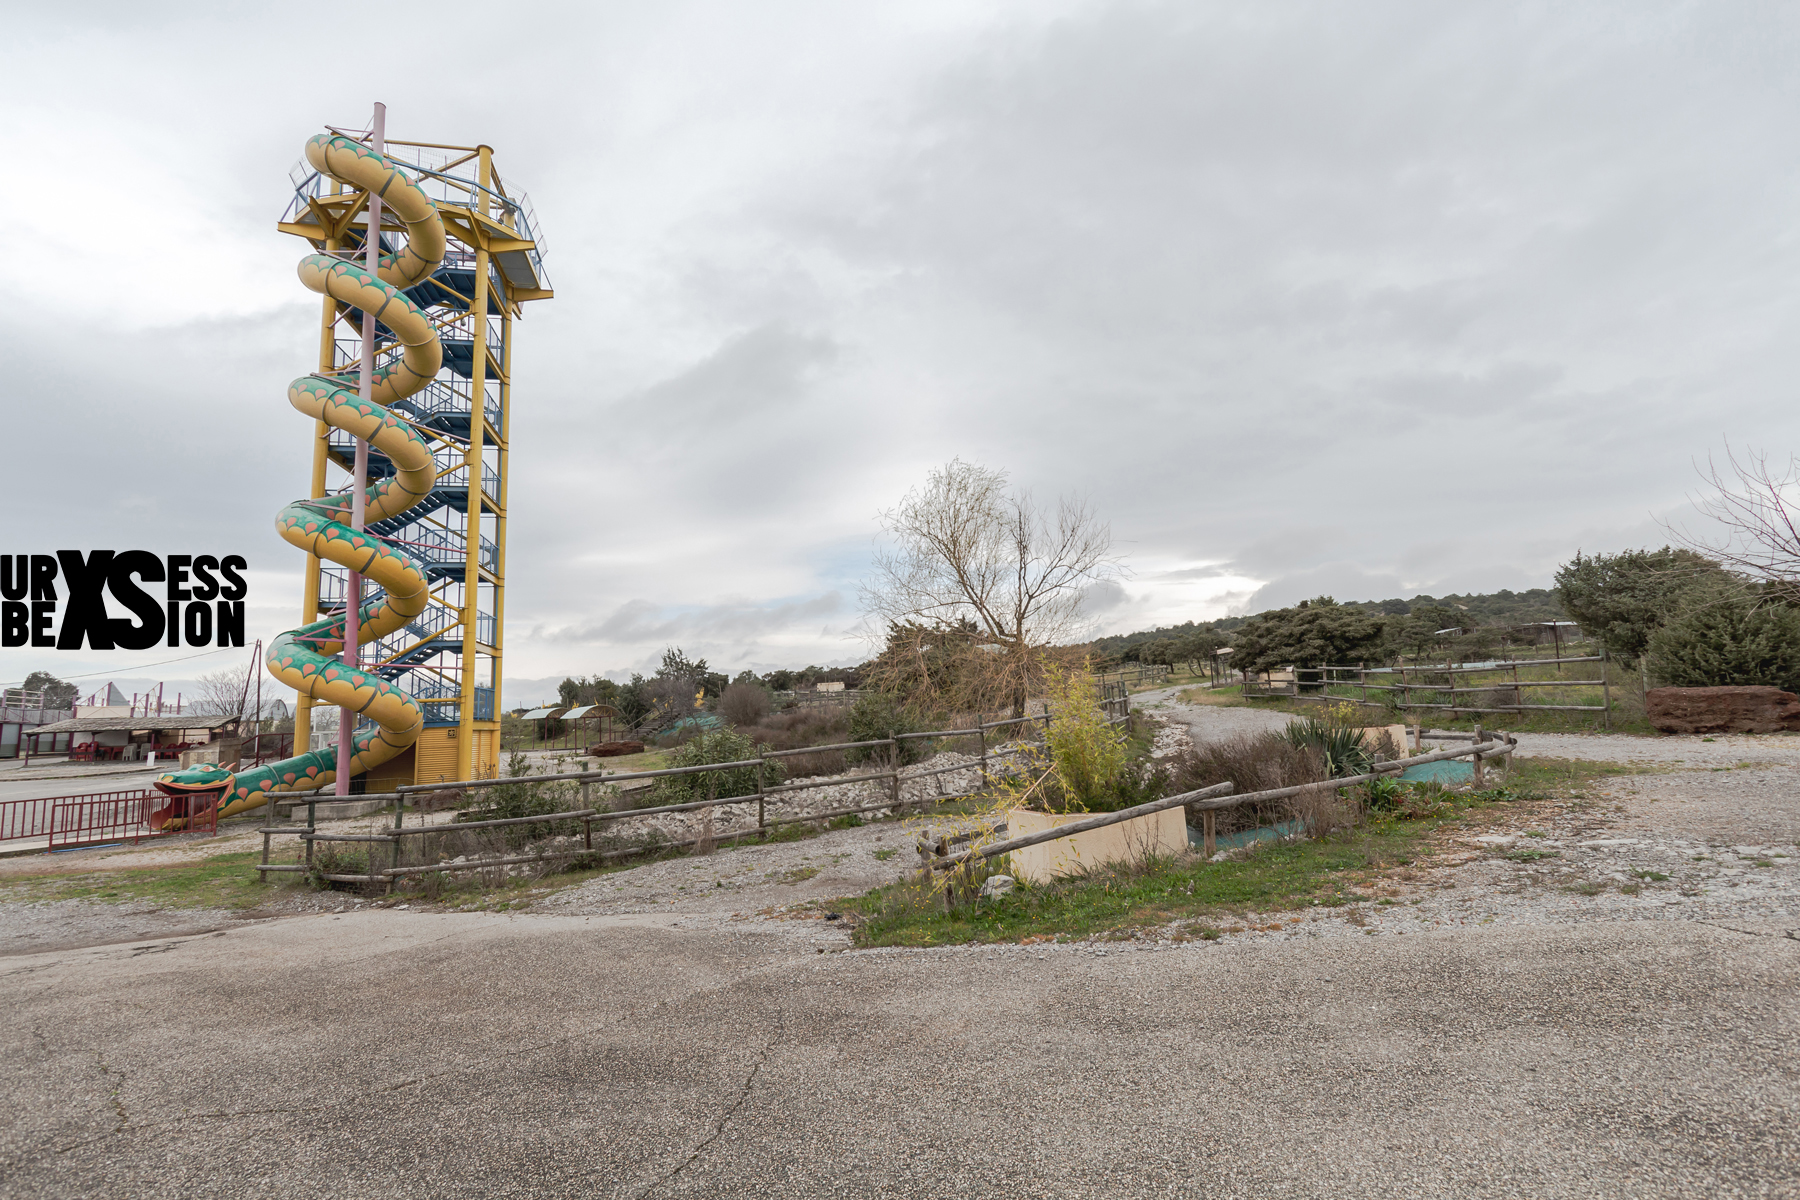 Parc d'attraction abandonné en France | urbexsession.com/parc-attraction-gacy-land | Urbex France